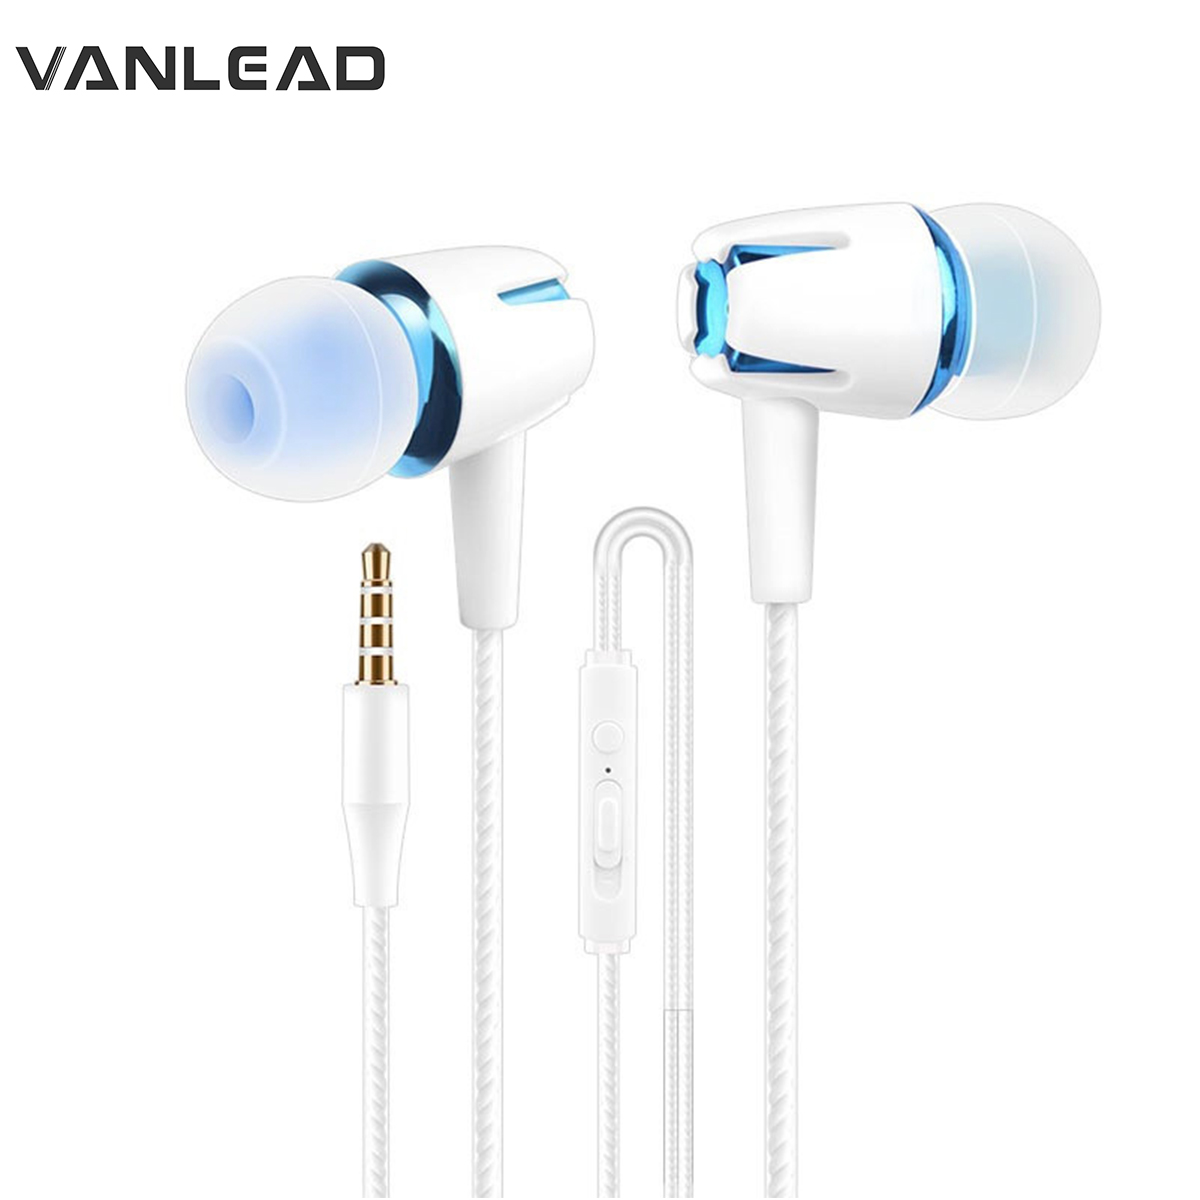 White Bass Stereo Earbuds Headset for IPhone Android Smart Cell Phones Transer Luminous In-ear Earphones with Mic /& Volume Control